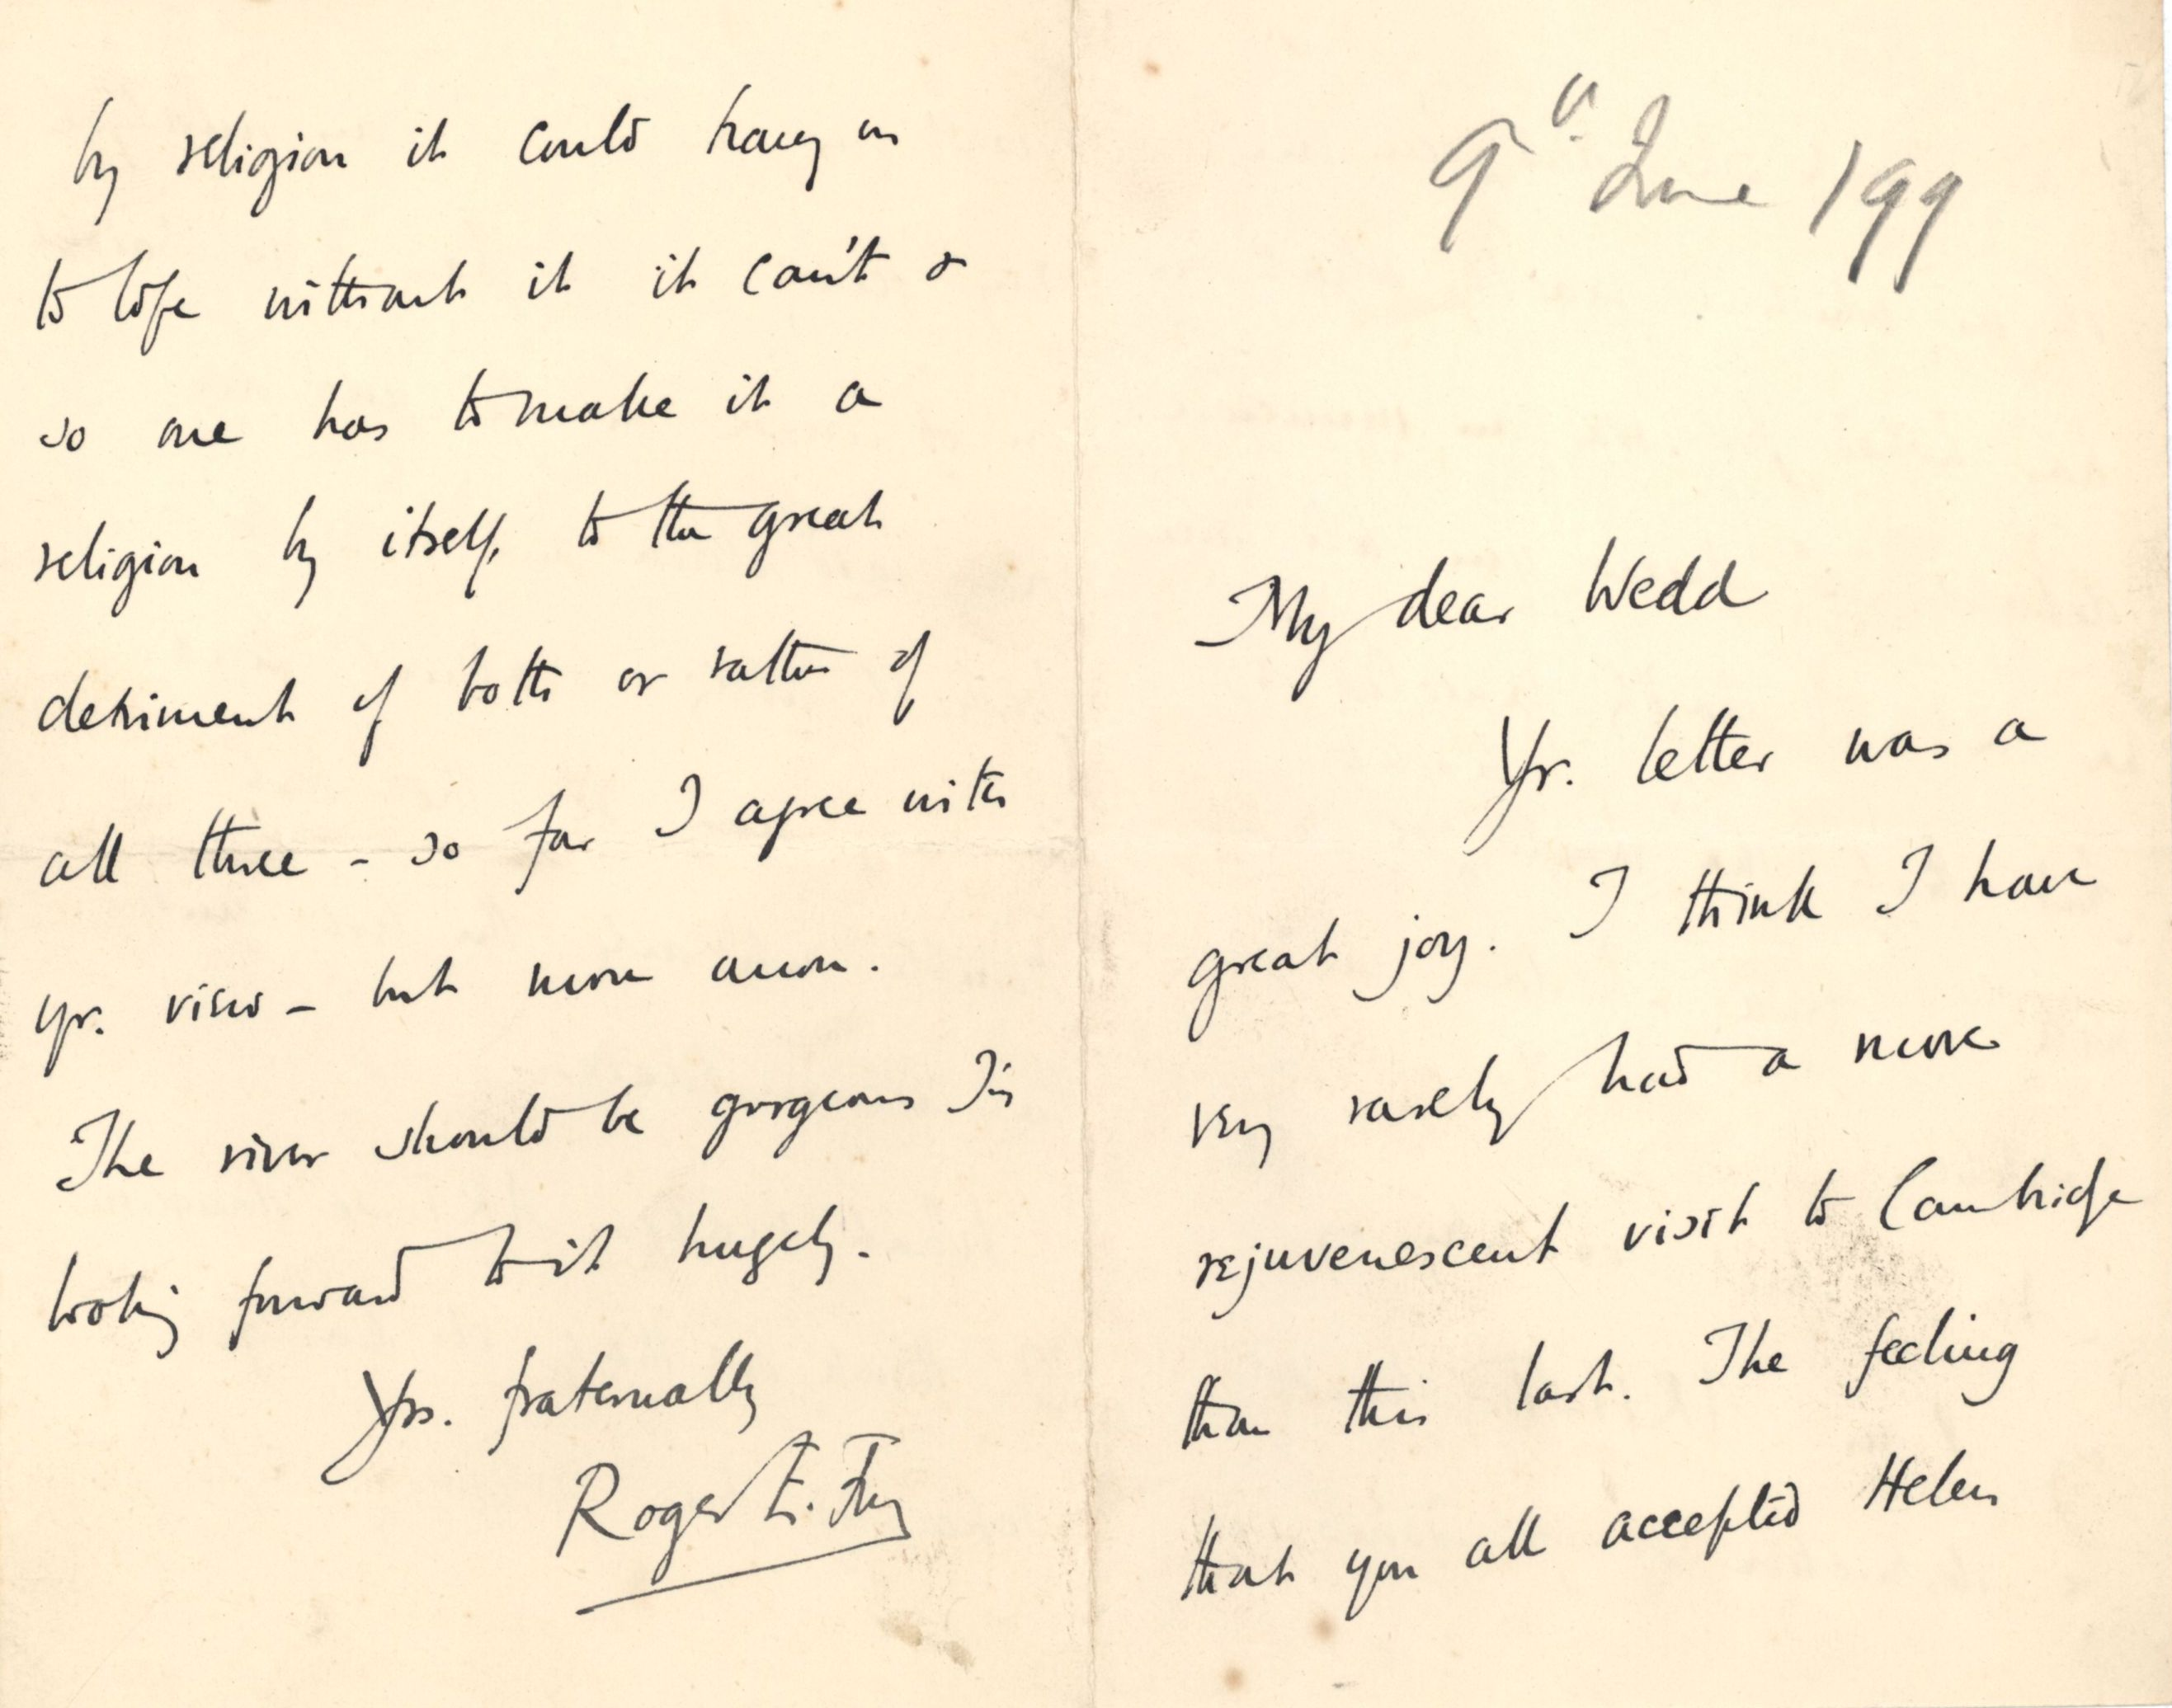 Letter from Roger Fry to Nathaniel Wedd, 9 June 1899, concerning art's relationship with life and religion. [NW/2/27]